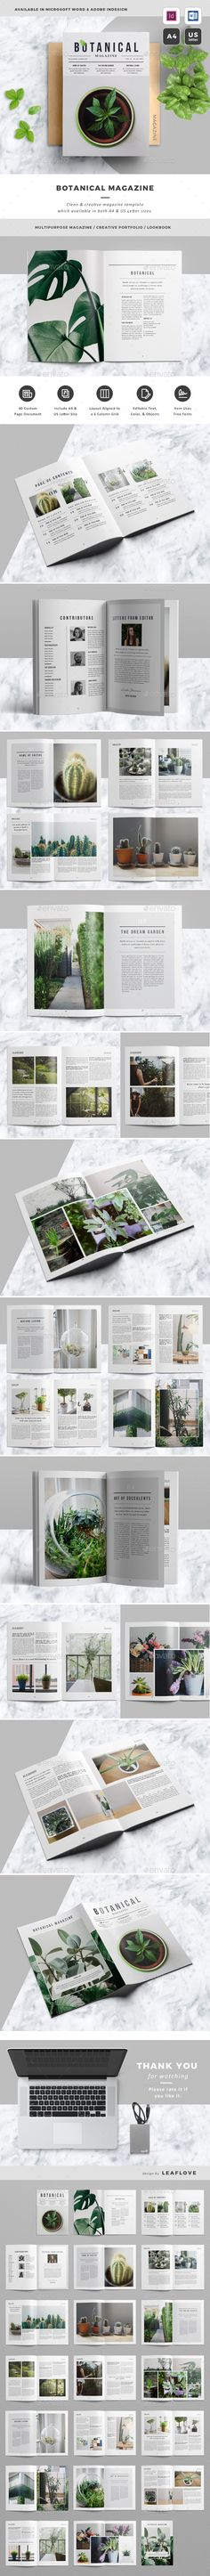 Botanical Magazine. Download: https://graphicriver.net/item/magazine/19260192?ref=thanhdesign